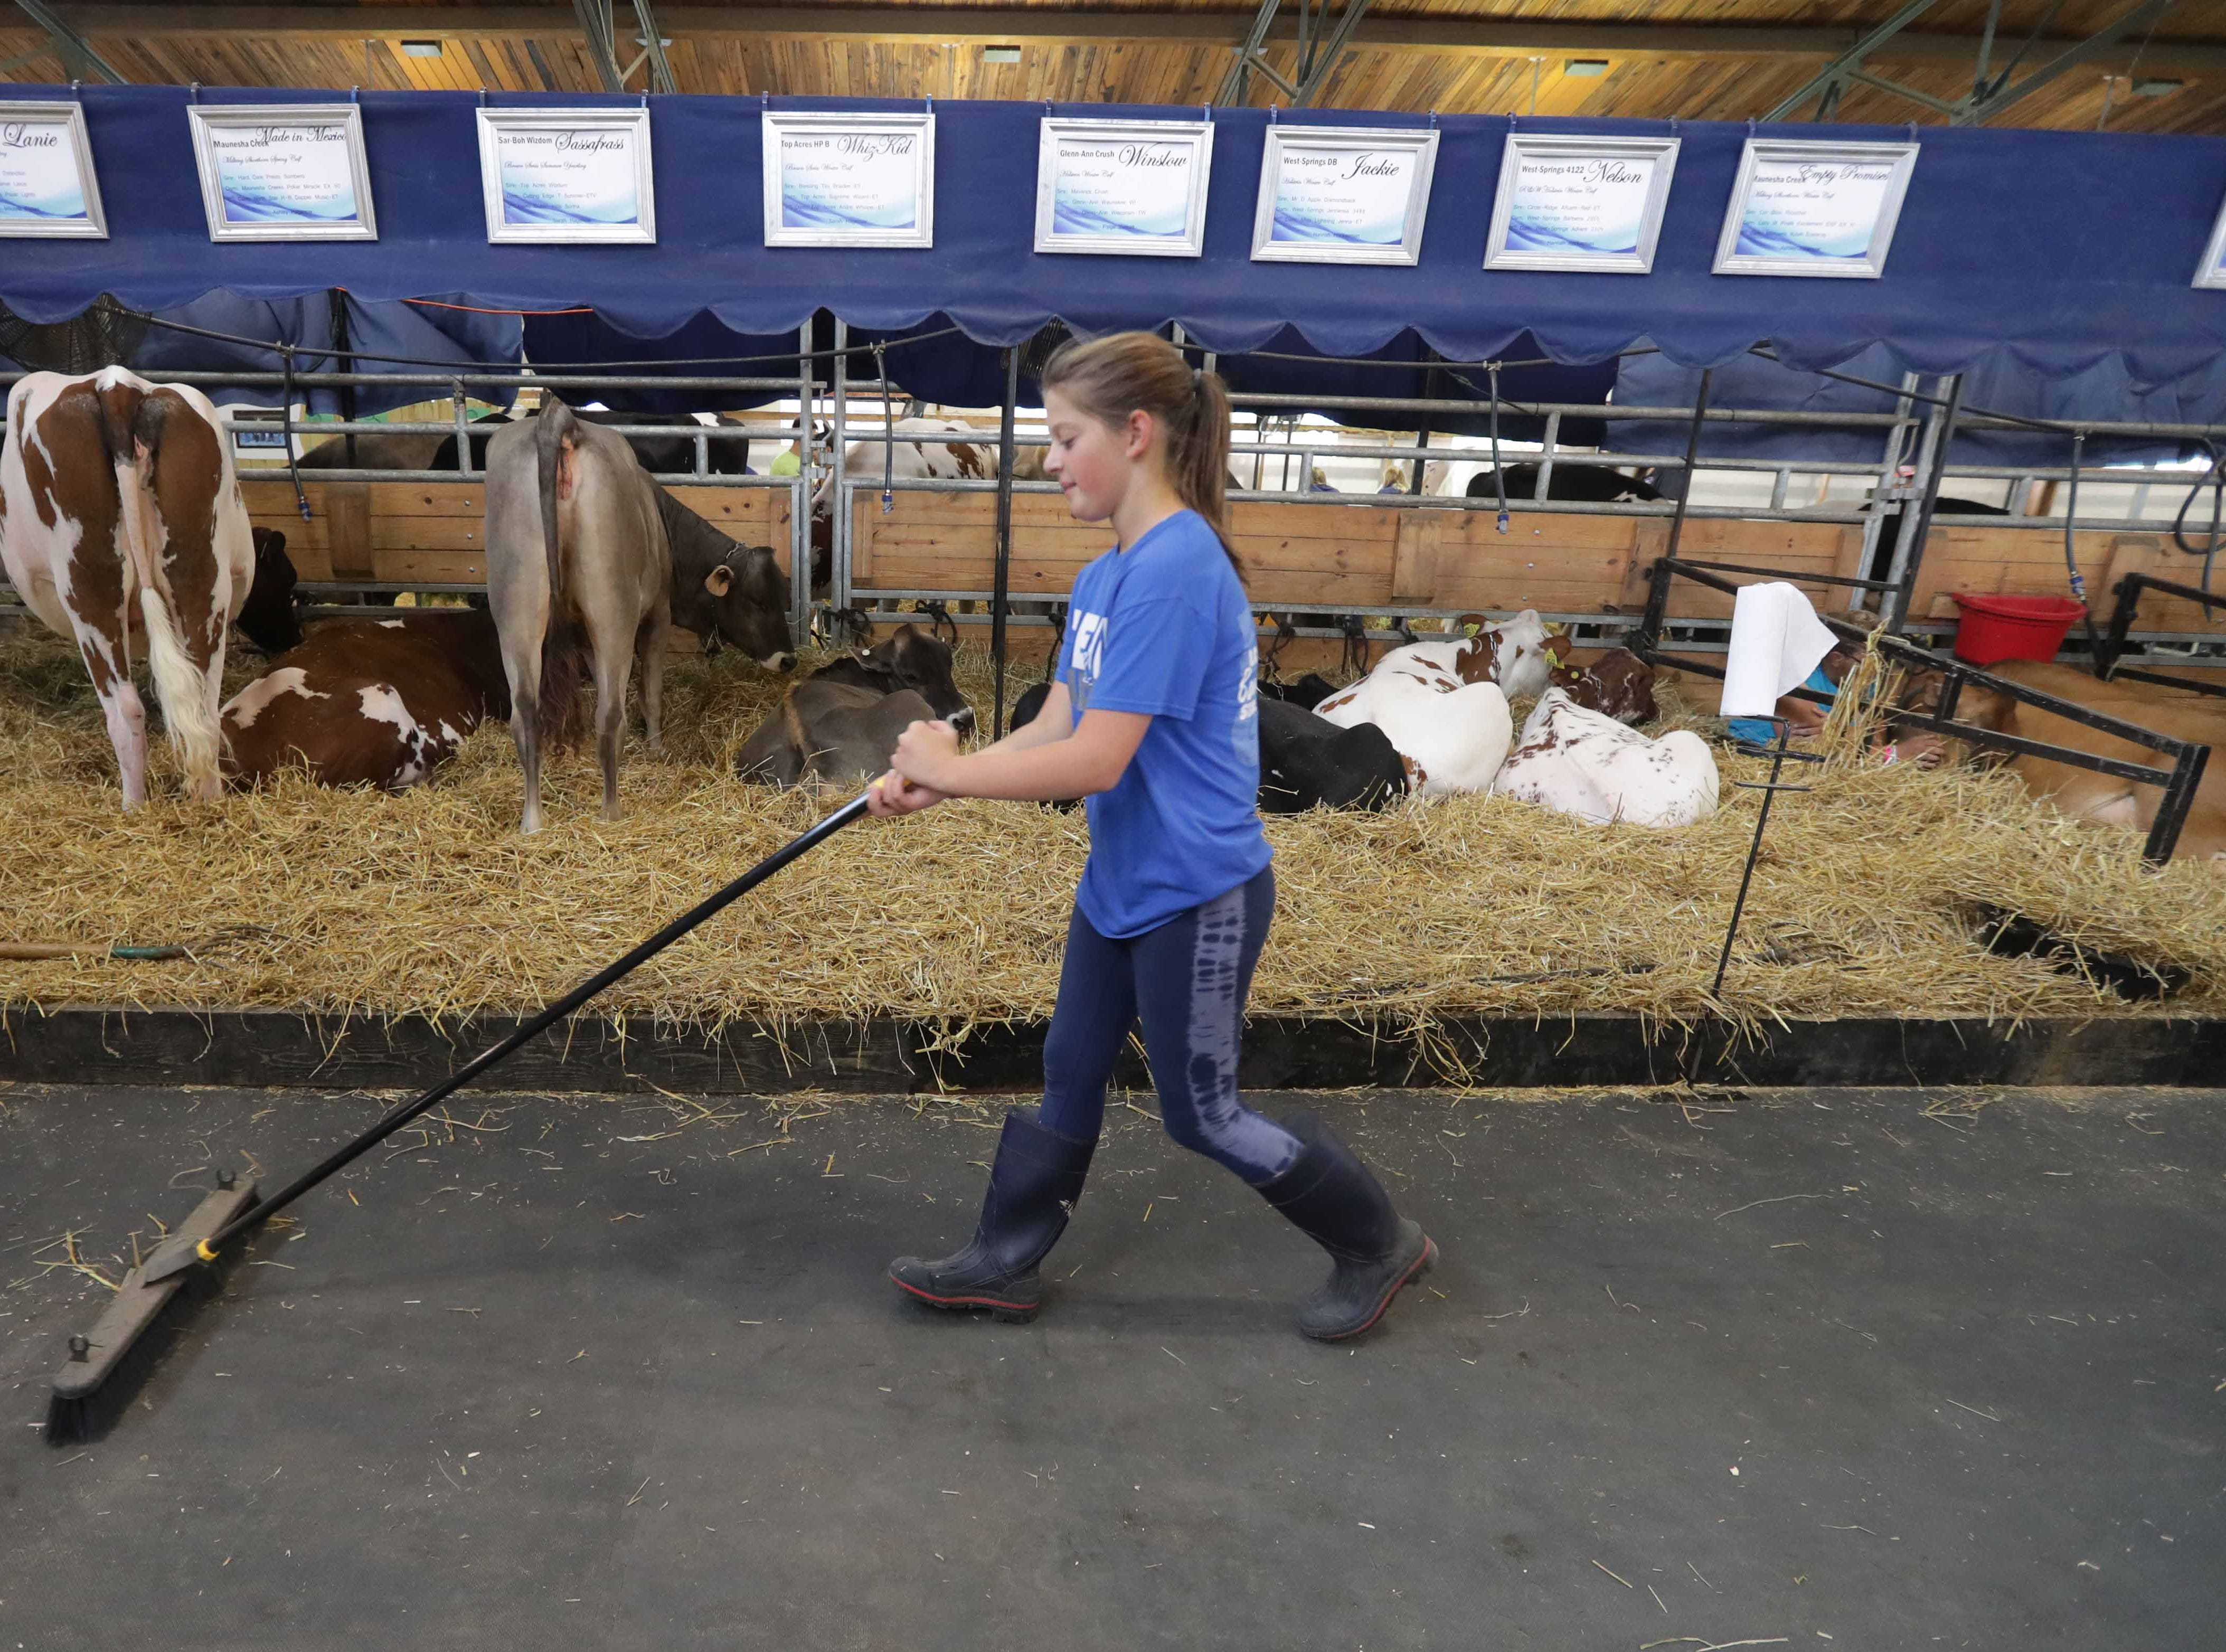 W-ANIMALS - Paige Sweatt, 13, from Dane, Wis. in Columbia County, and a in Lodi Challengers 4-H member sweeps up in the House of Moo area.  Youth from across the area from various 4-H groups and agriculture organizations, descended on the Wisconsin State Fair grounds in West Allis to ready their animals for shows. The opening of the 167th Wisconsin State Fair took place at the Wisconsin State Fair grounds in West Allis on Thursday, August 2, 2018. The fair runs through Sunday, August 12  -  Photo by Mike De Sisti / Milwaukee Journal Sentinel